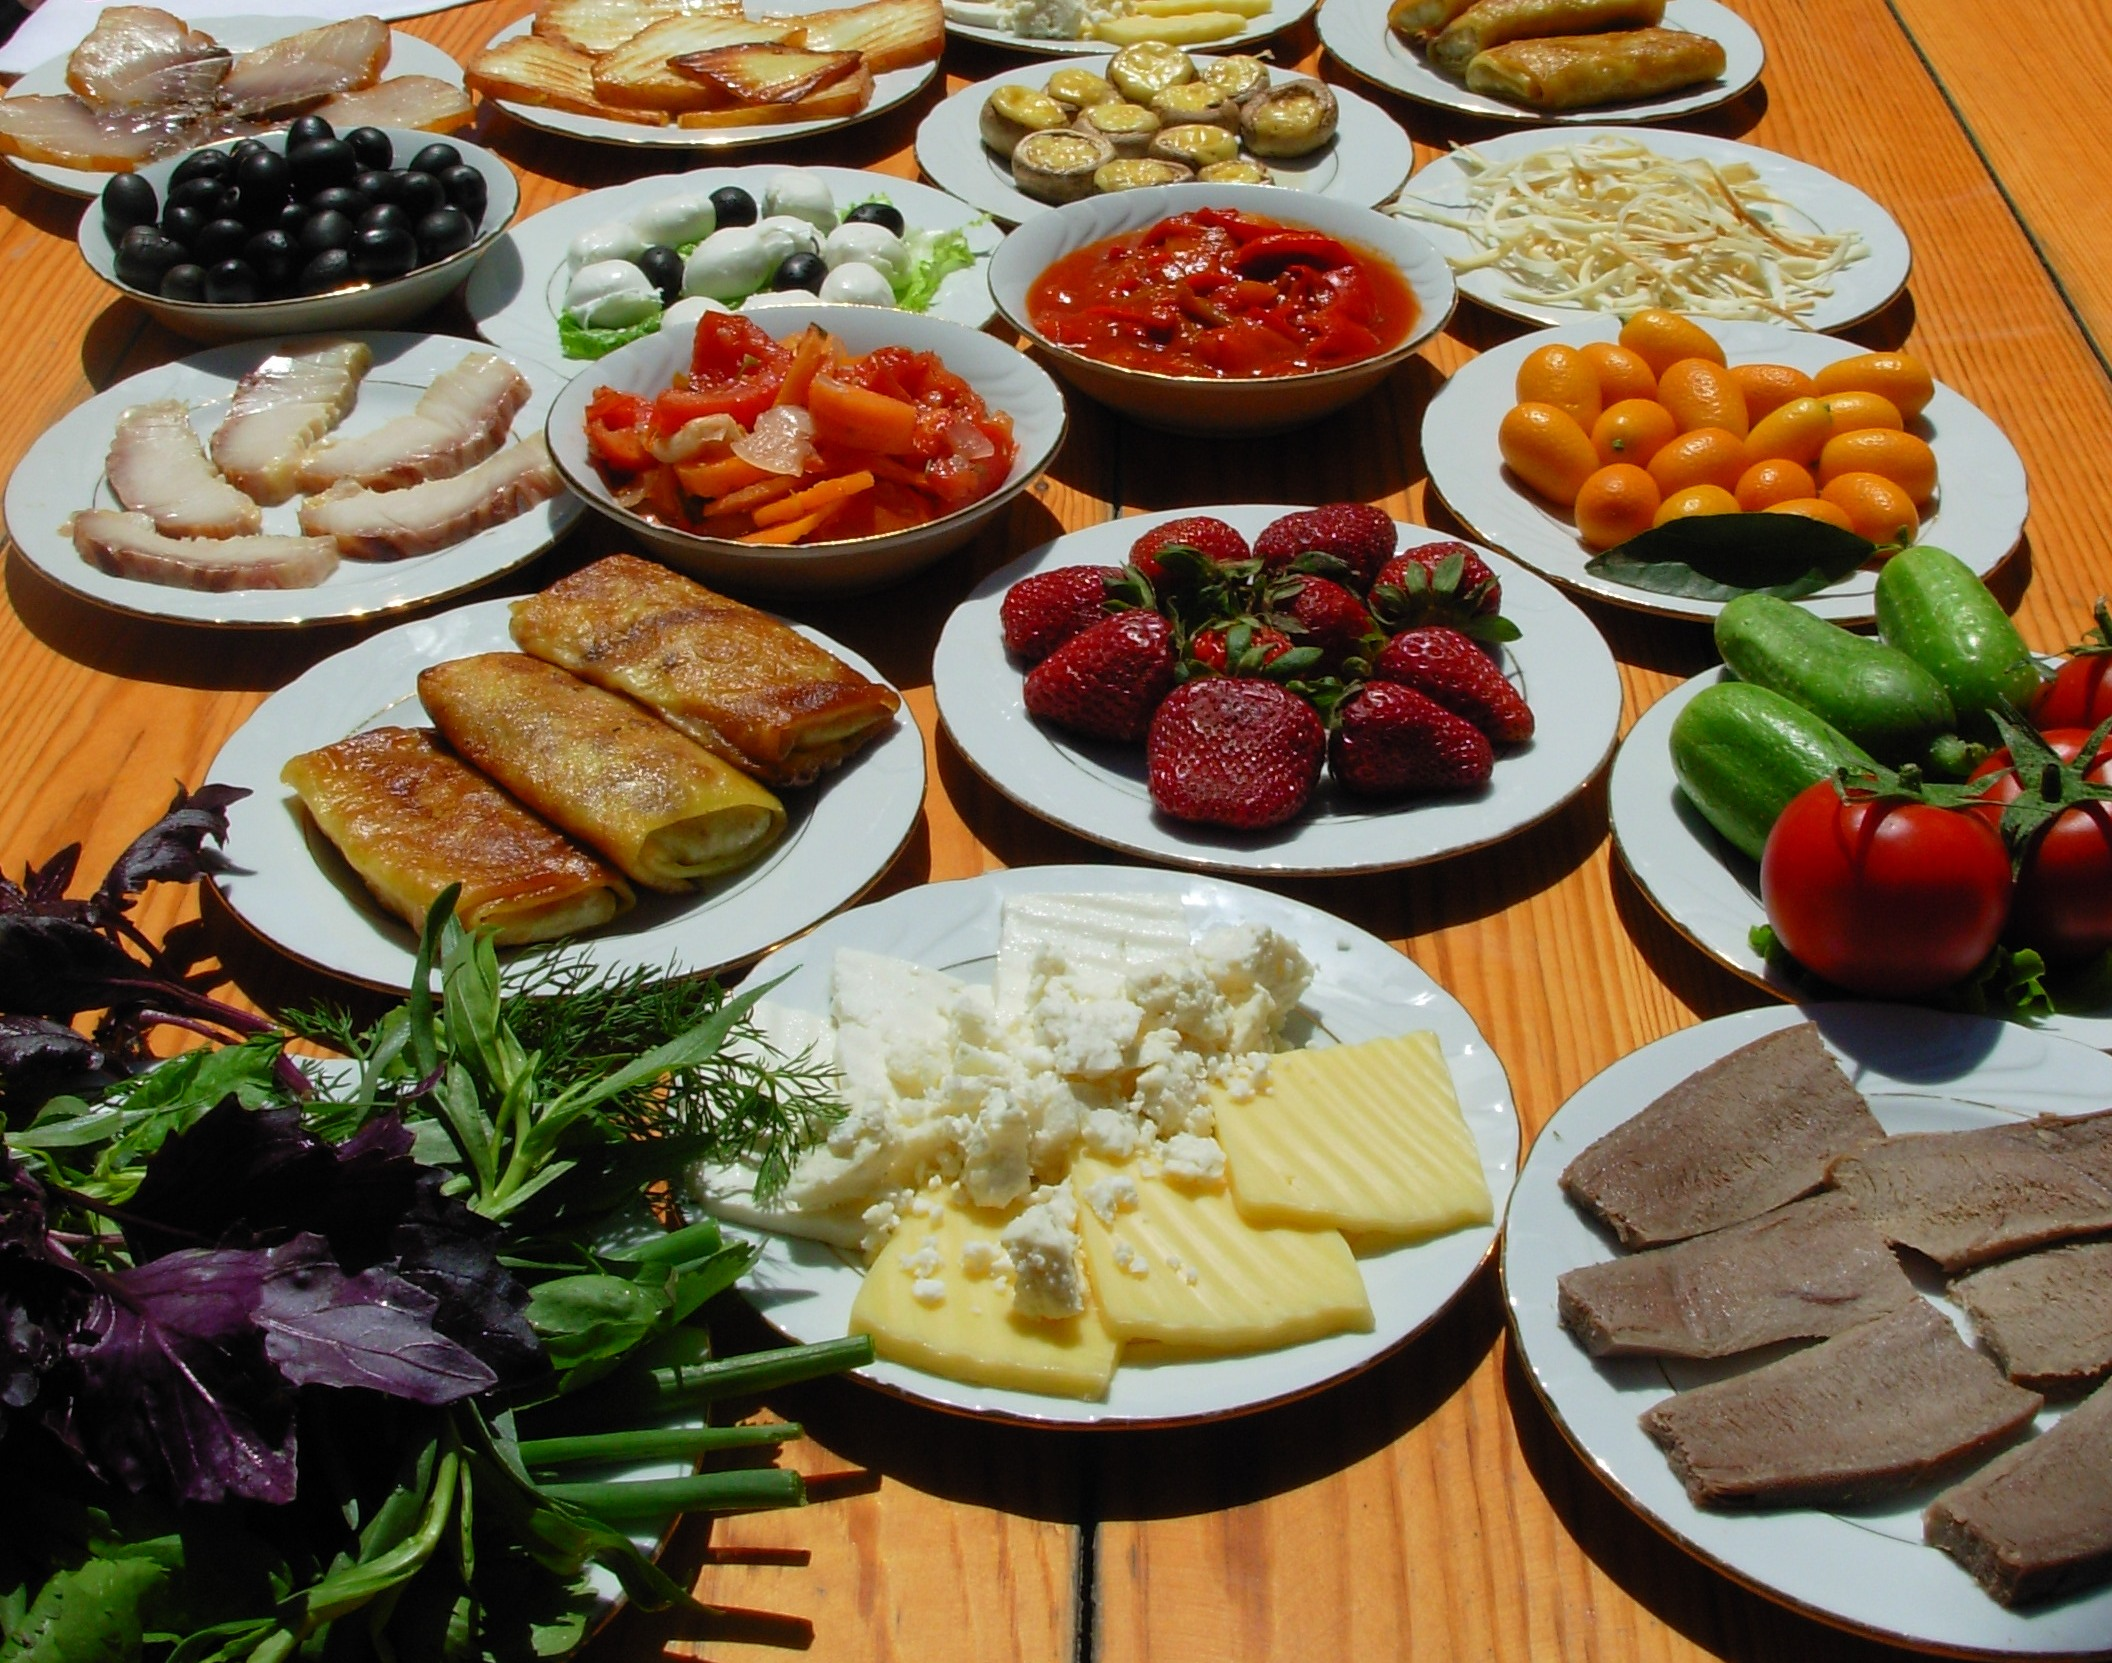 File:Azerbaijan Light snack.jpg - Wikipedia